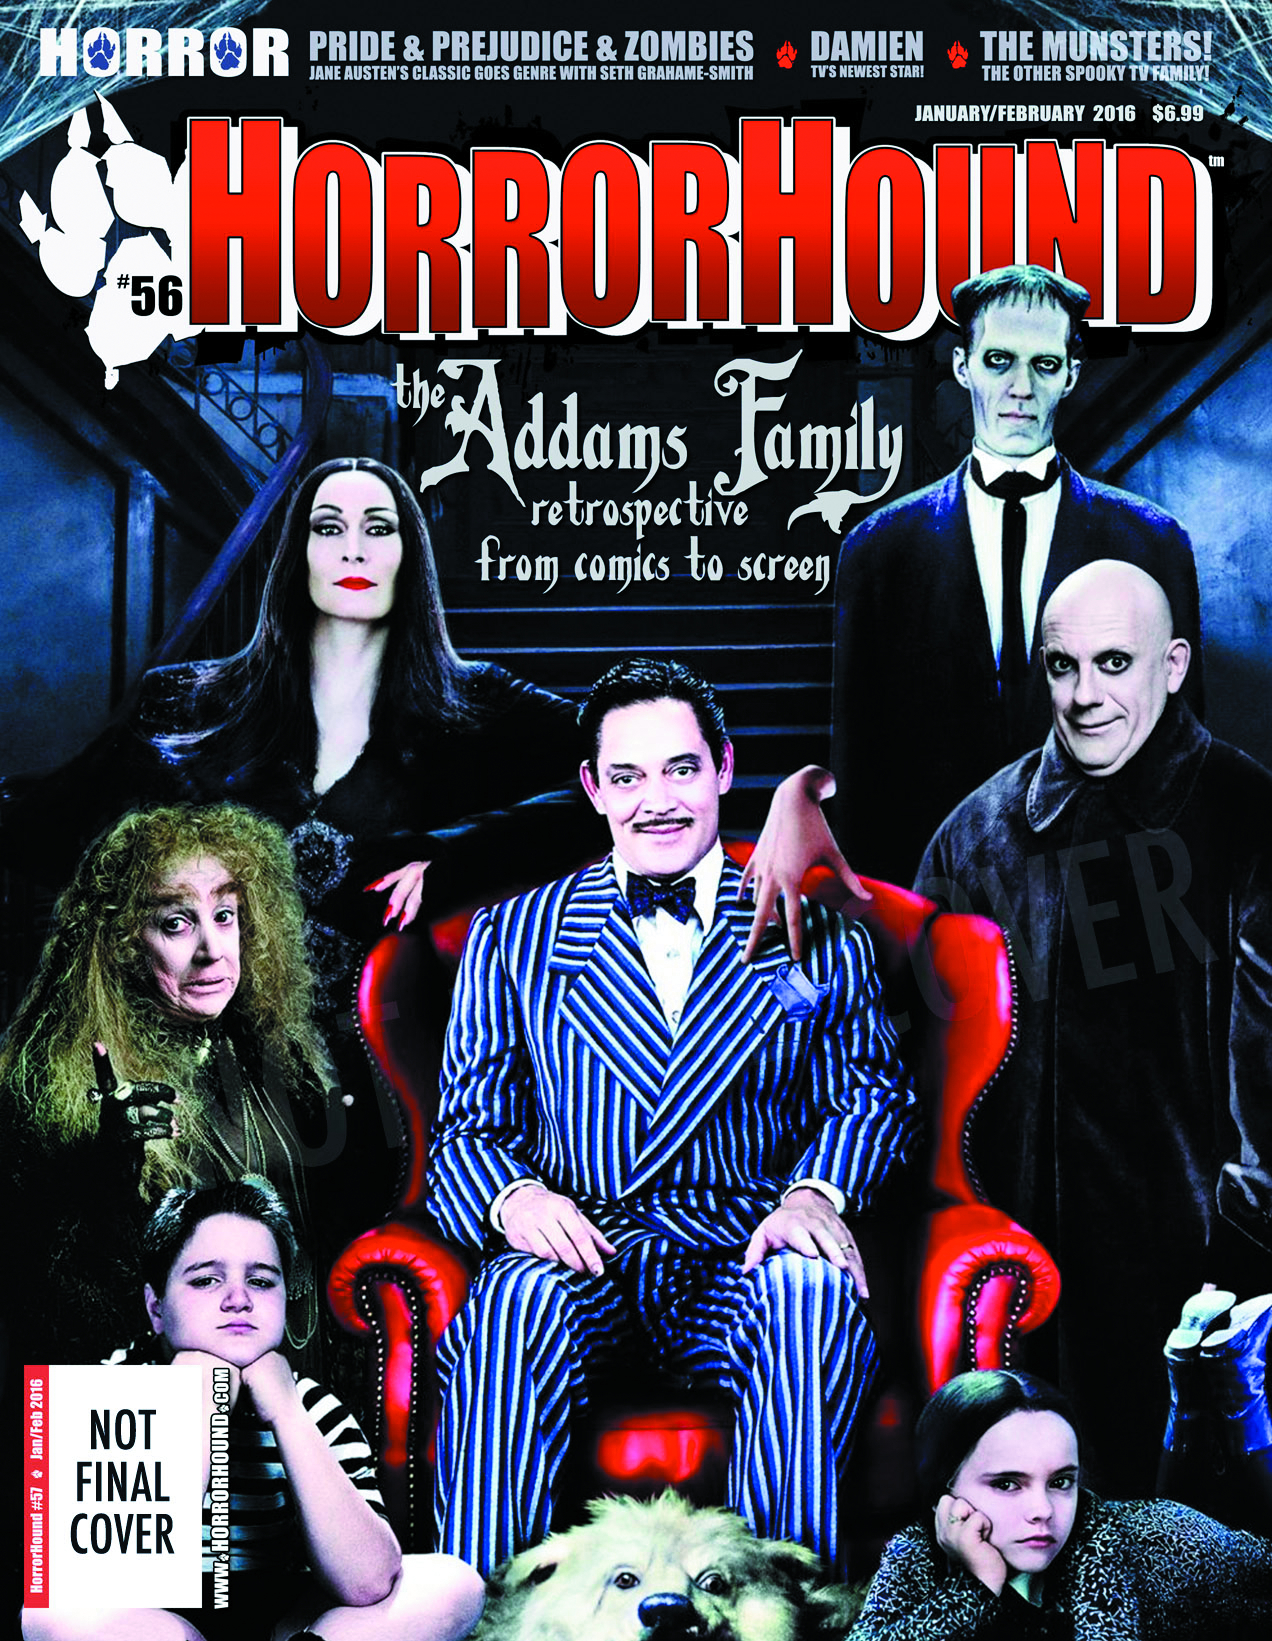 HORRORHOUND #57